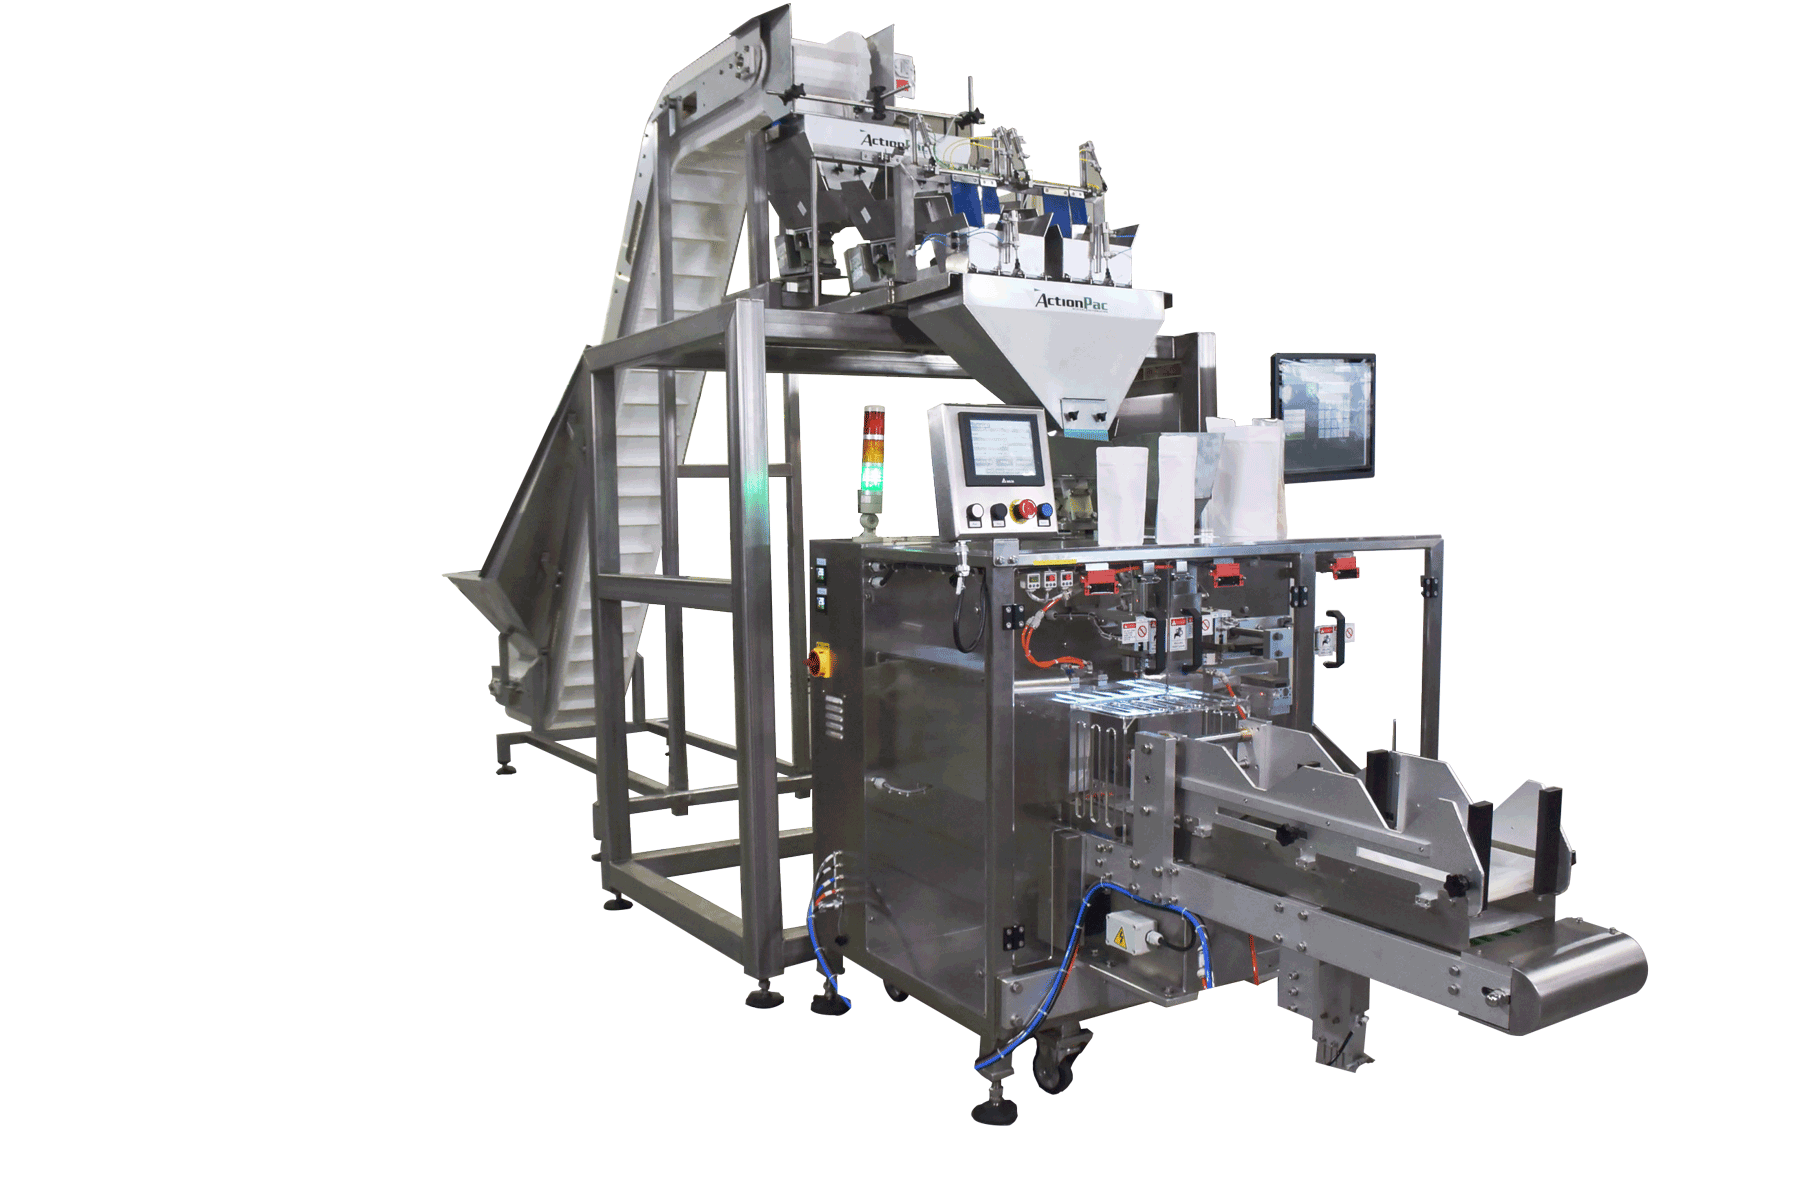 packaging machinery for cereal, granola, grain and powders. weighing, filling and bagging equipment.